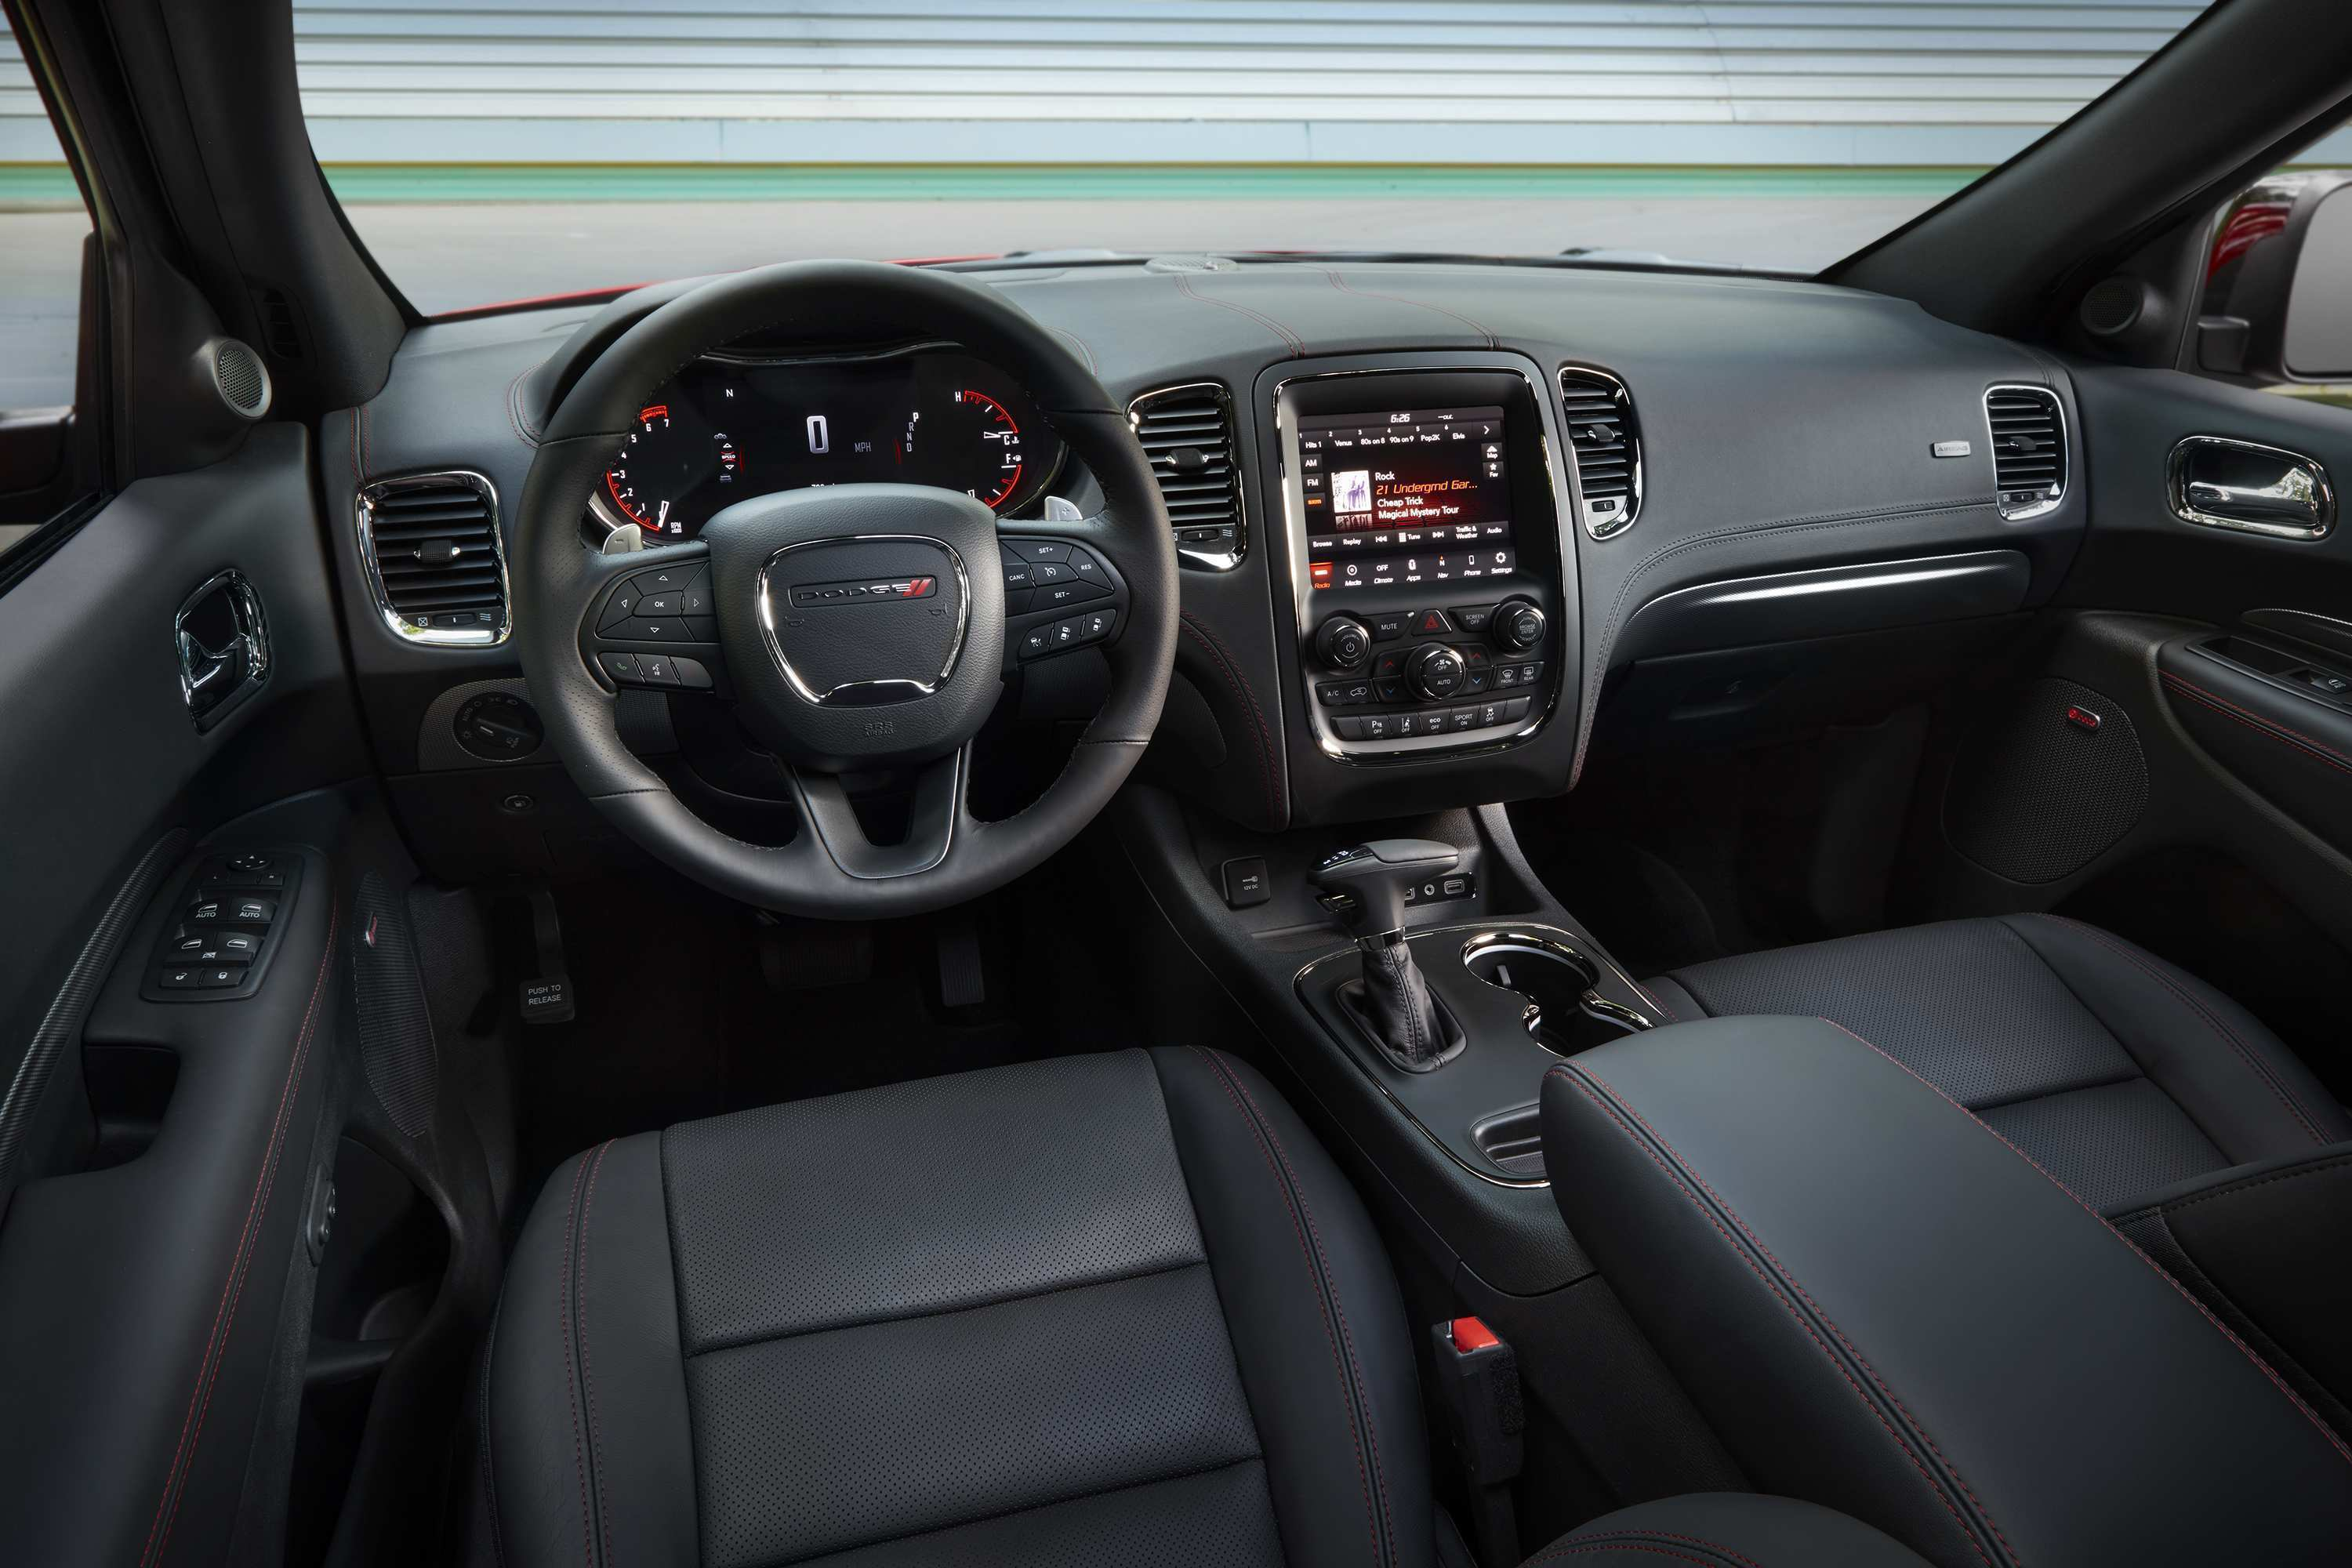 21 Best 2020 Dodge Durango Interior Release Date And Concept